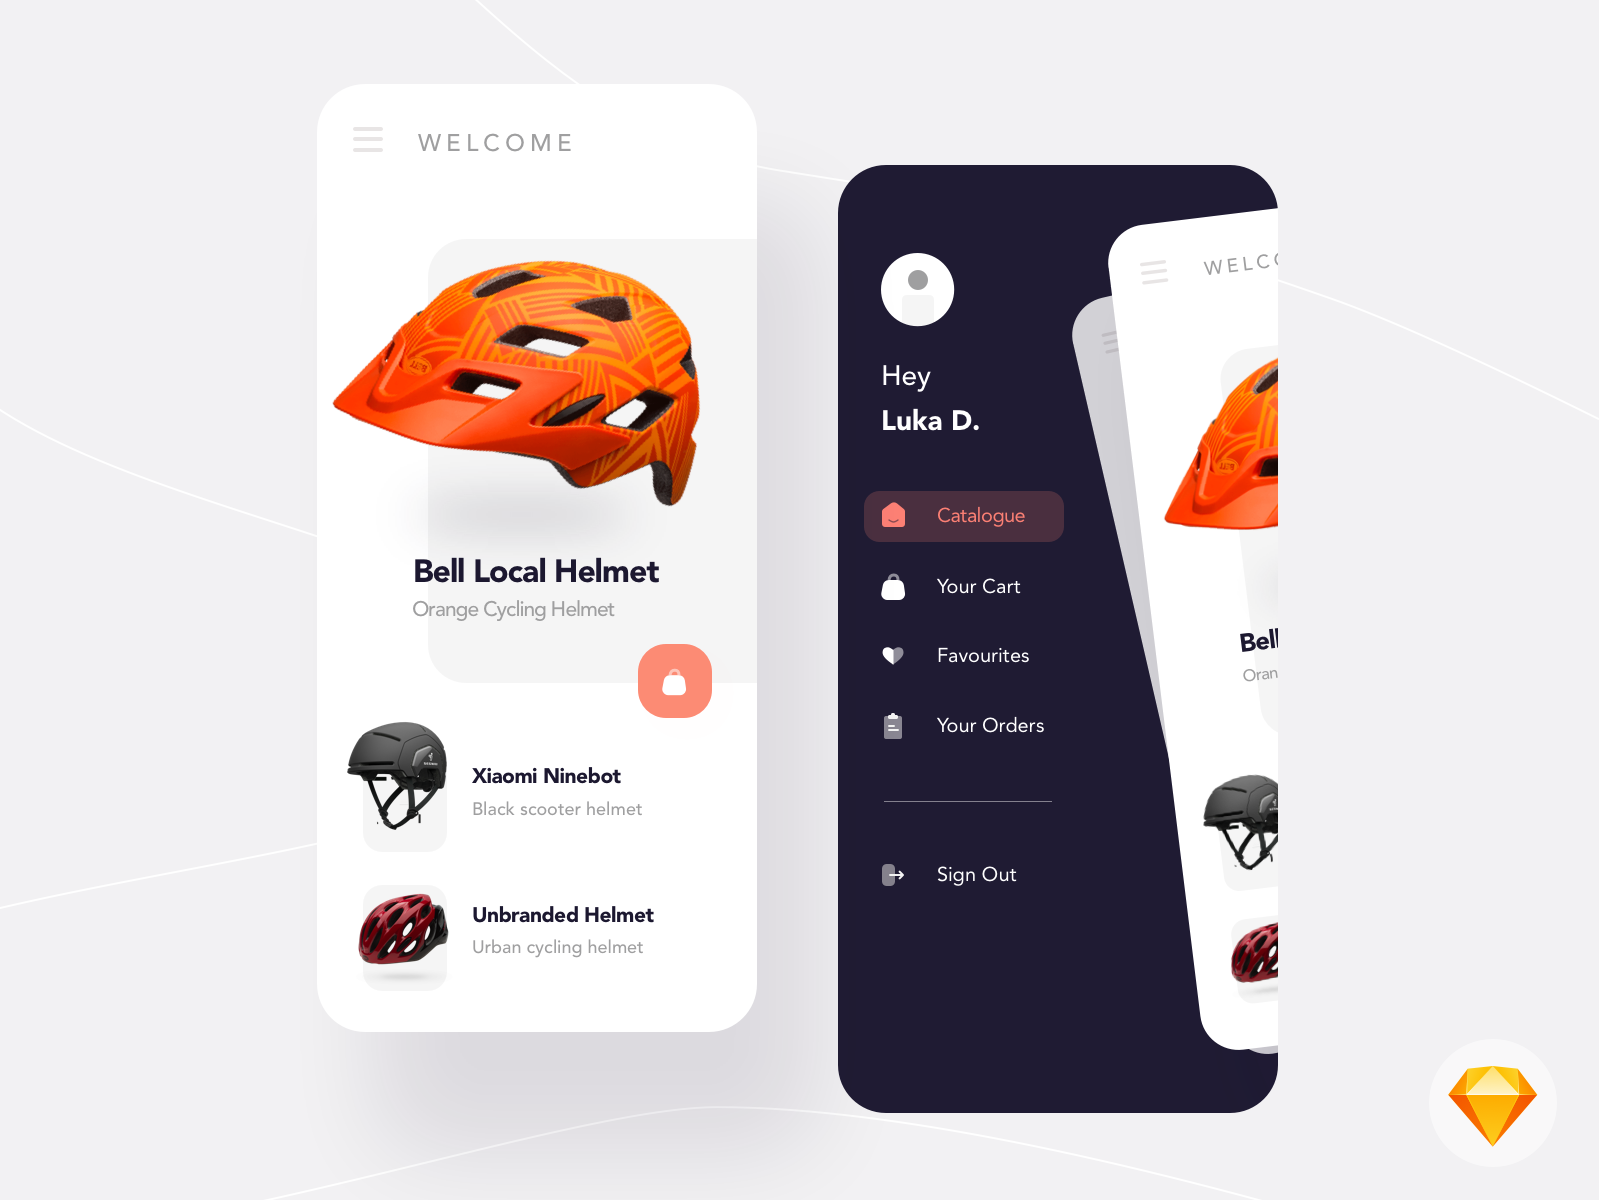 DAY 02 - Helmet Shopping App cover image